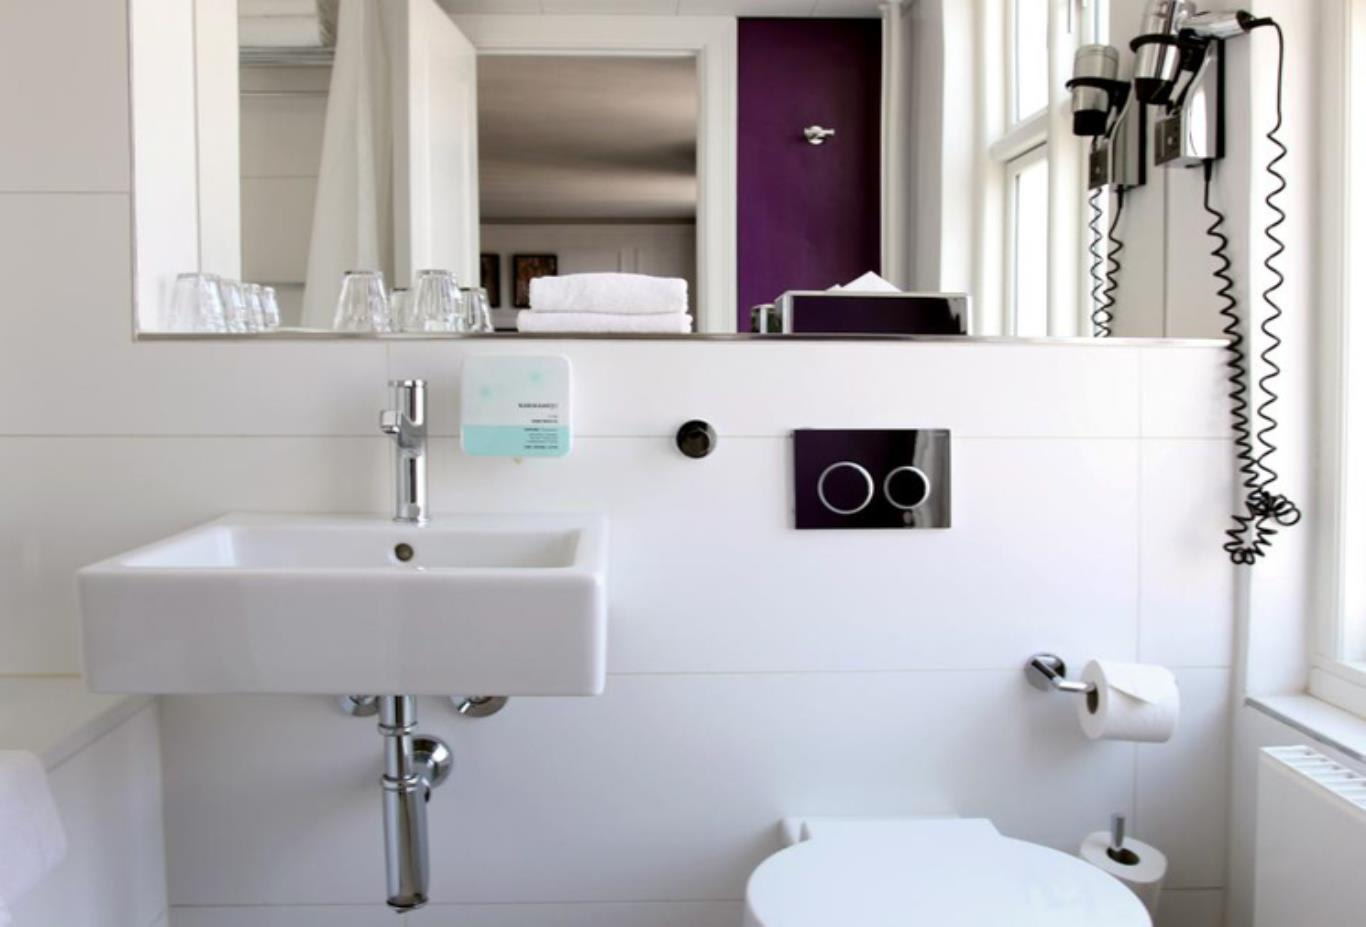 Small double room bathroom